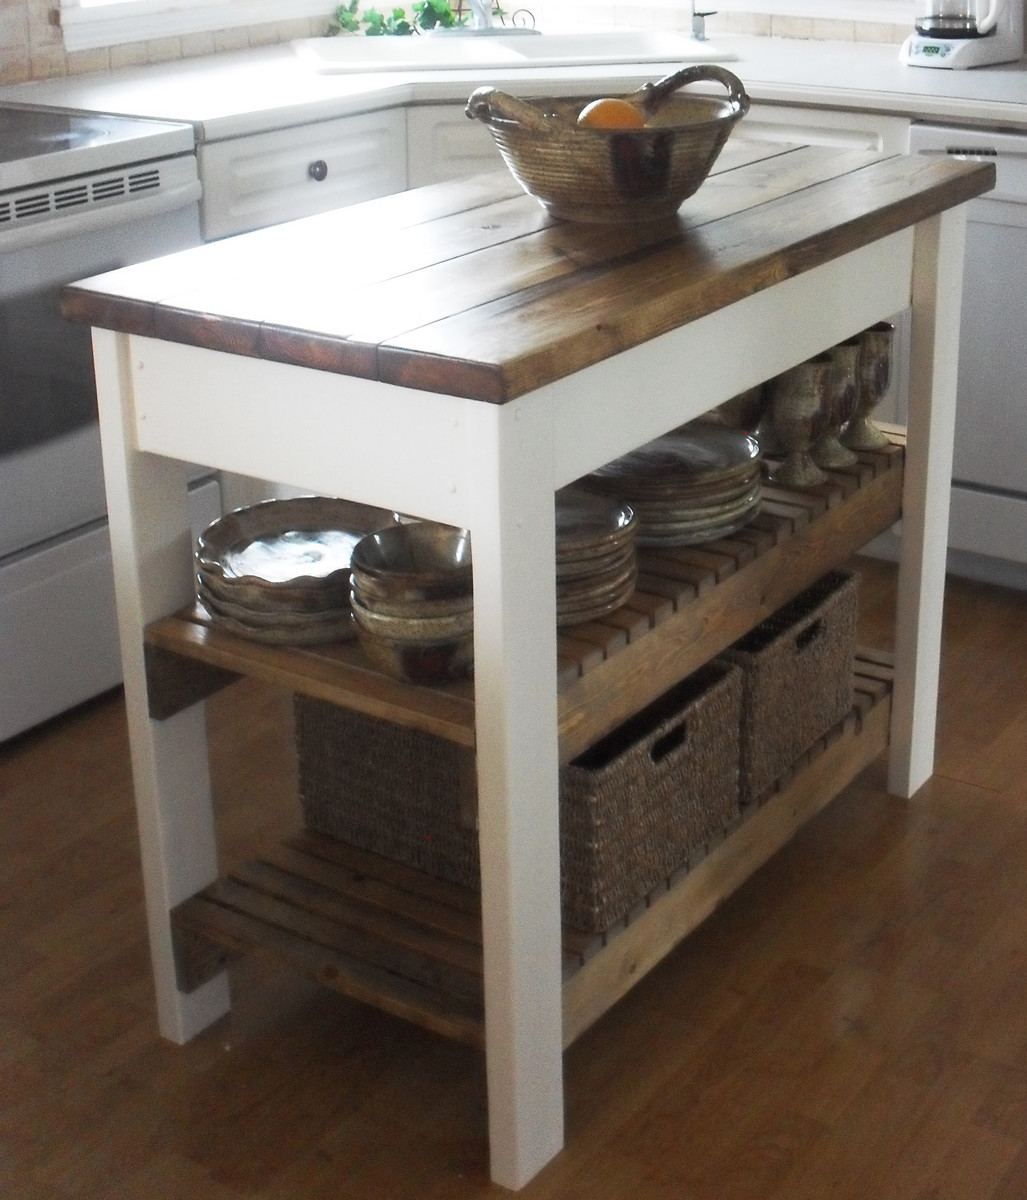 Build Michaela S Kitchen Island Diy Projects: Kitchen Island - DIY Projects